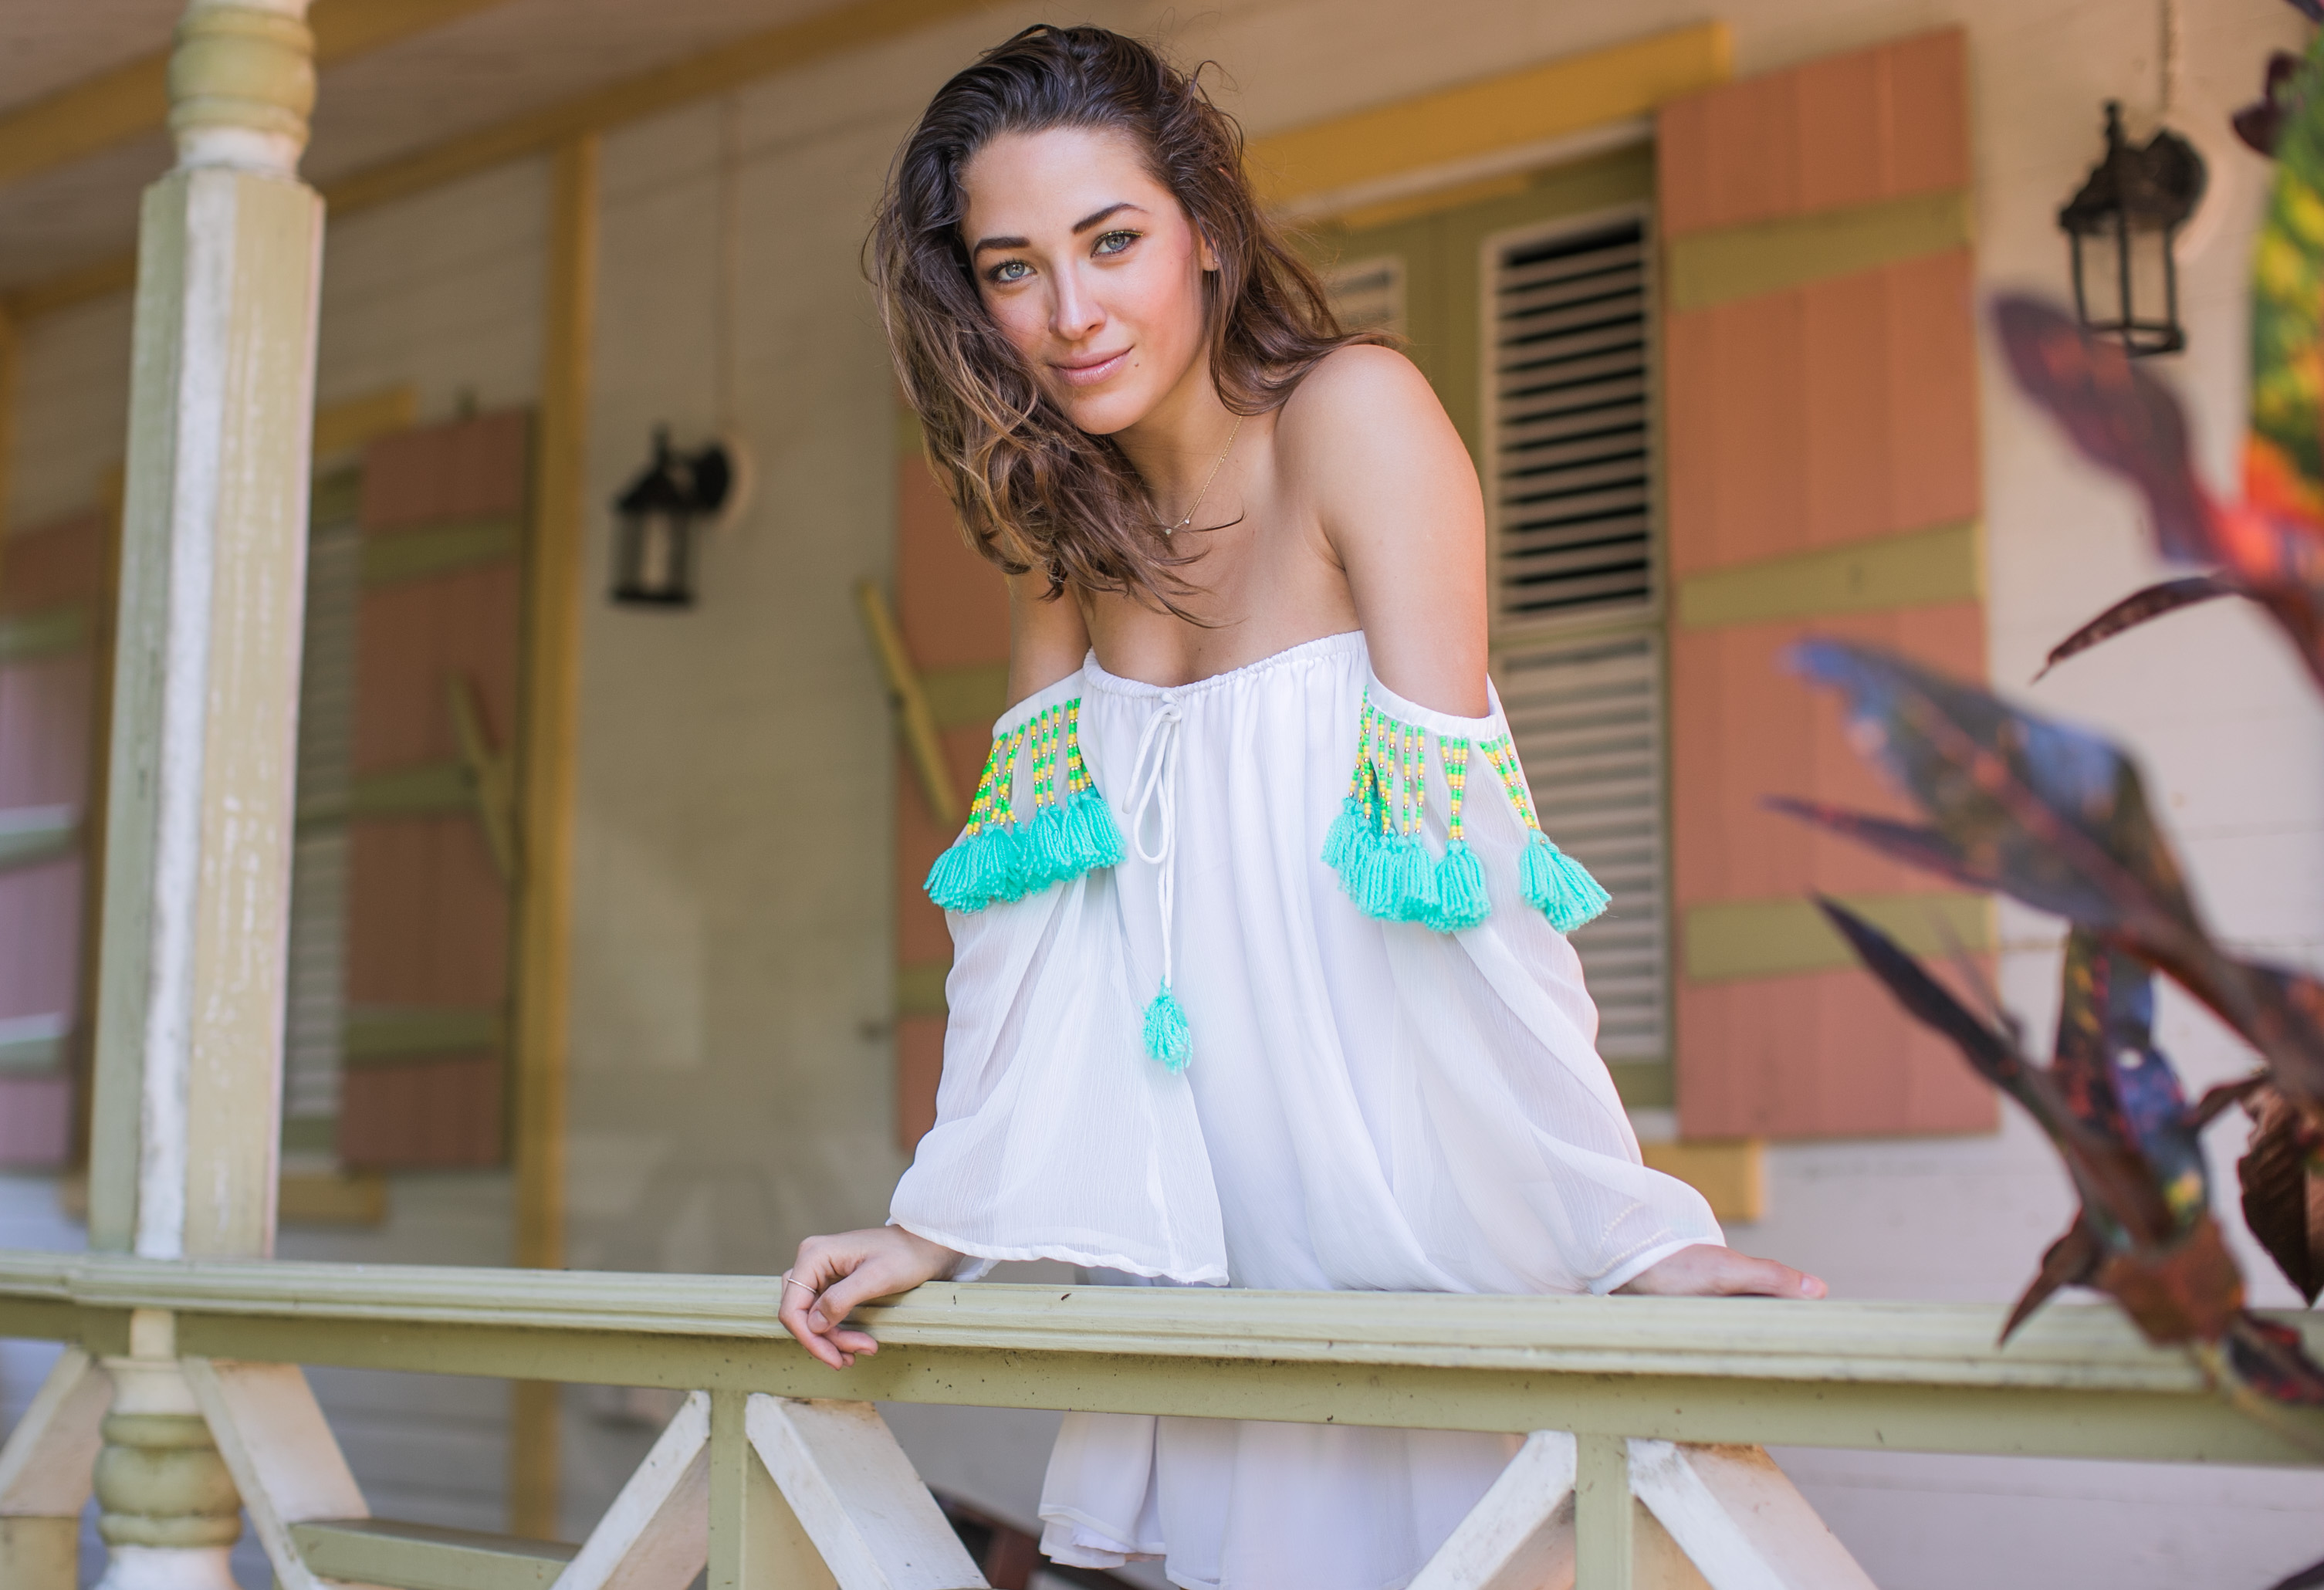 4438dcc3a0 Russian model and blogger Xenia and photographer Samuel Black exploring St  Lucia. Xenia wears Sundress. Fashion Photographer ...